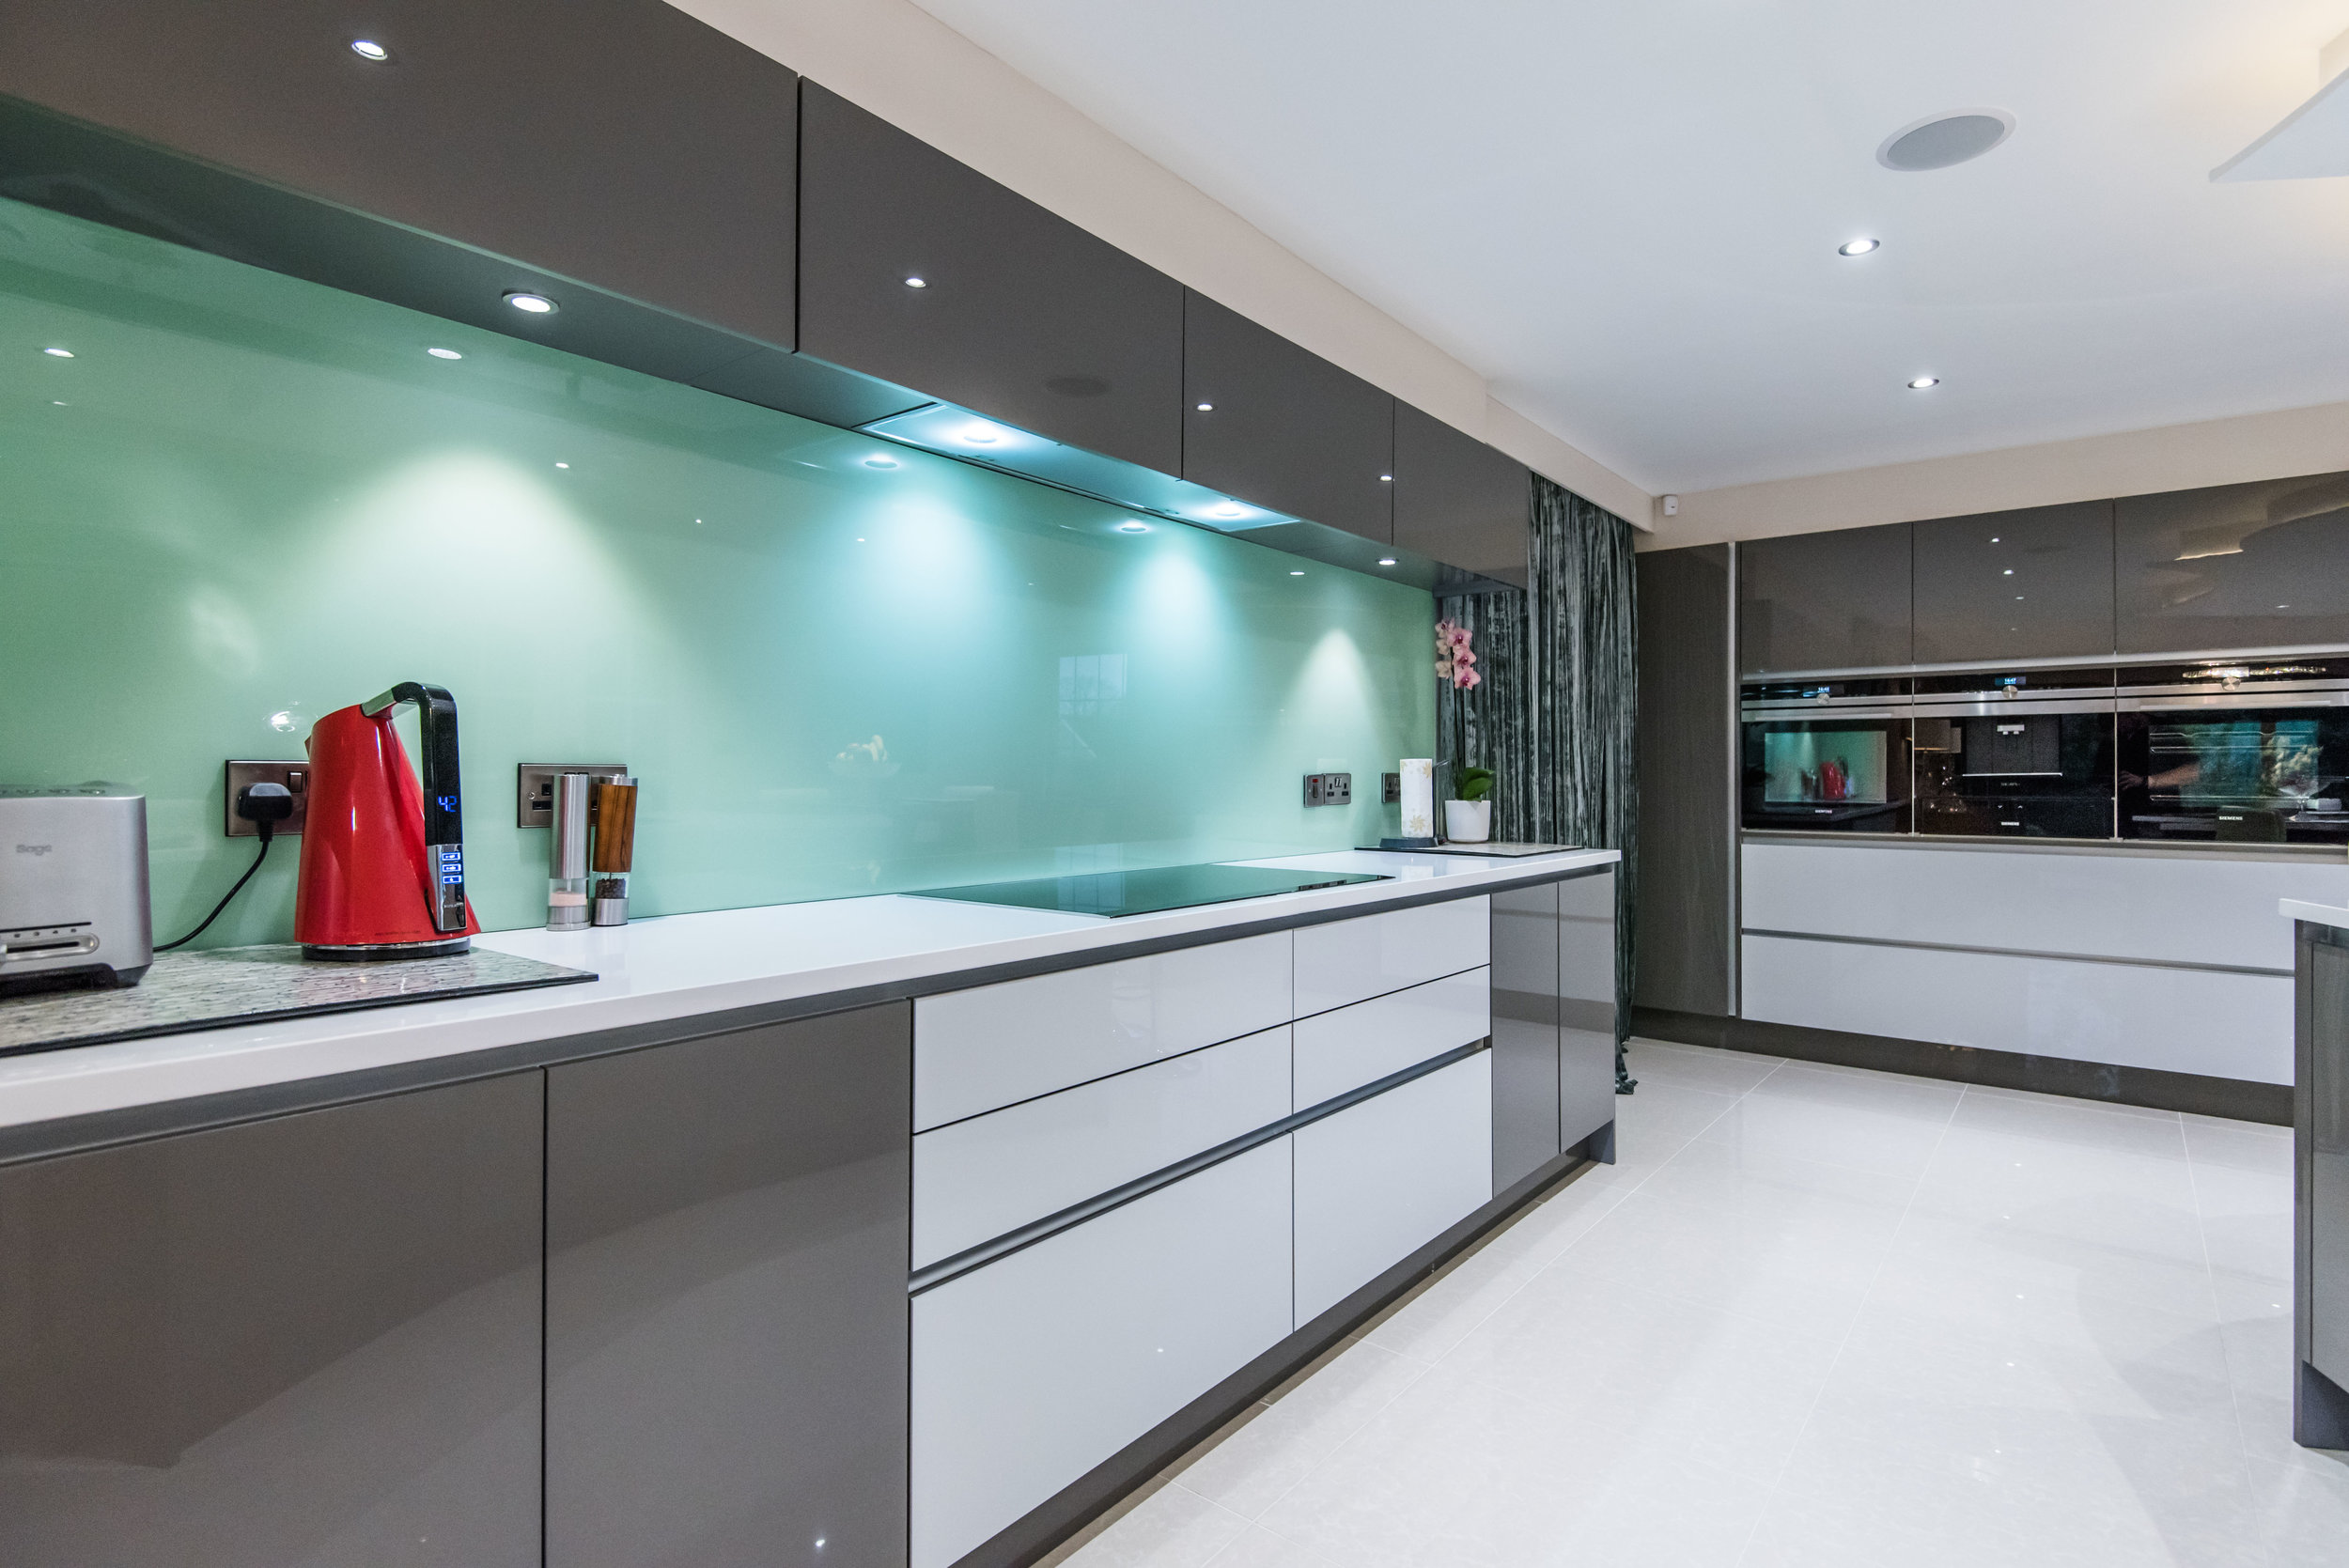 LF -016 -Gloss kitchen.jpg